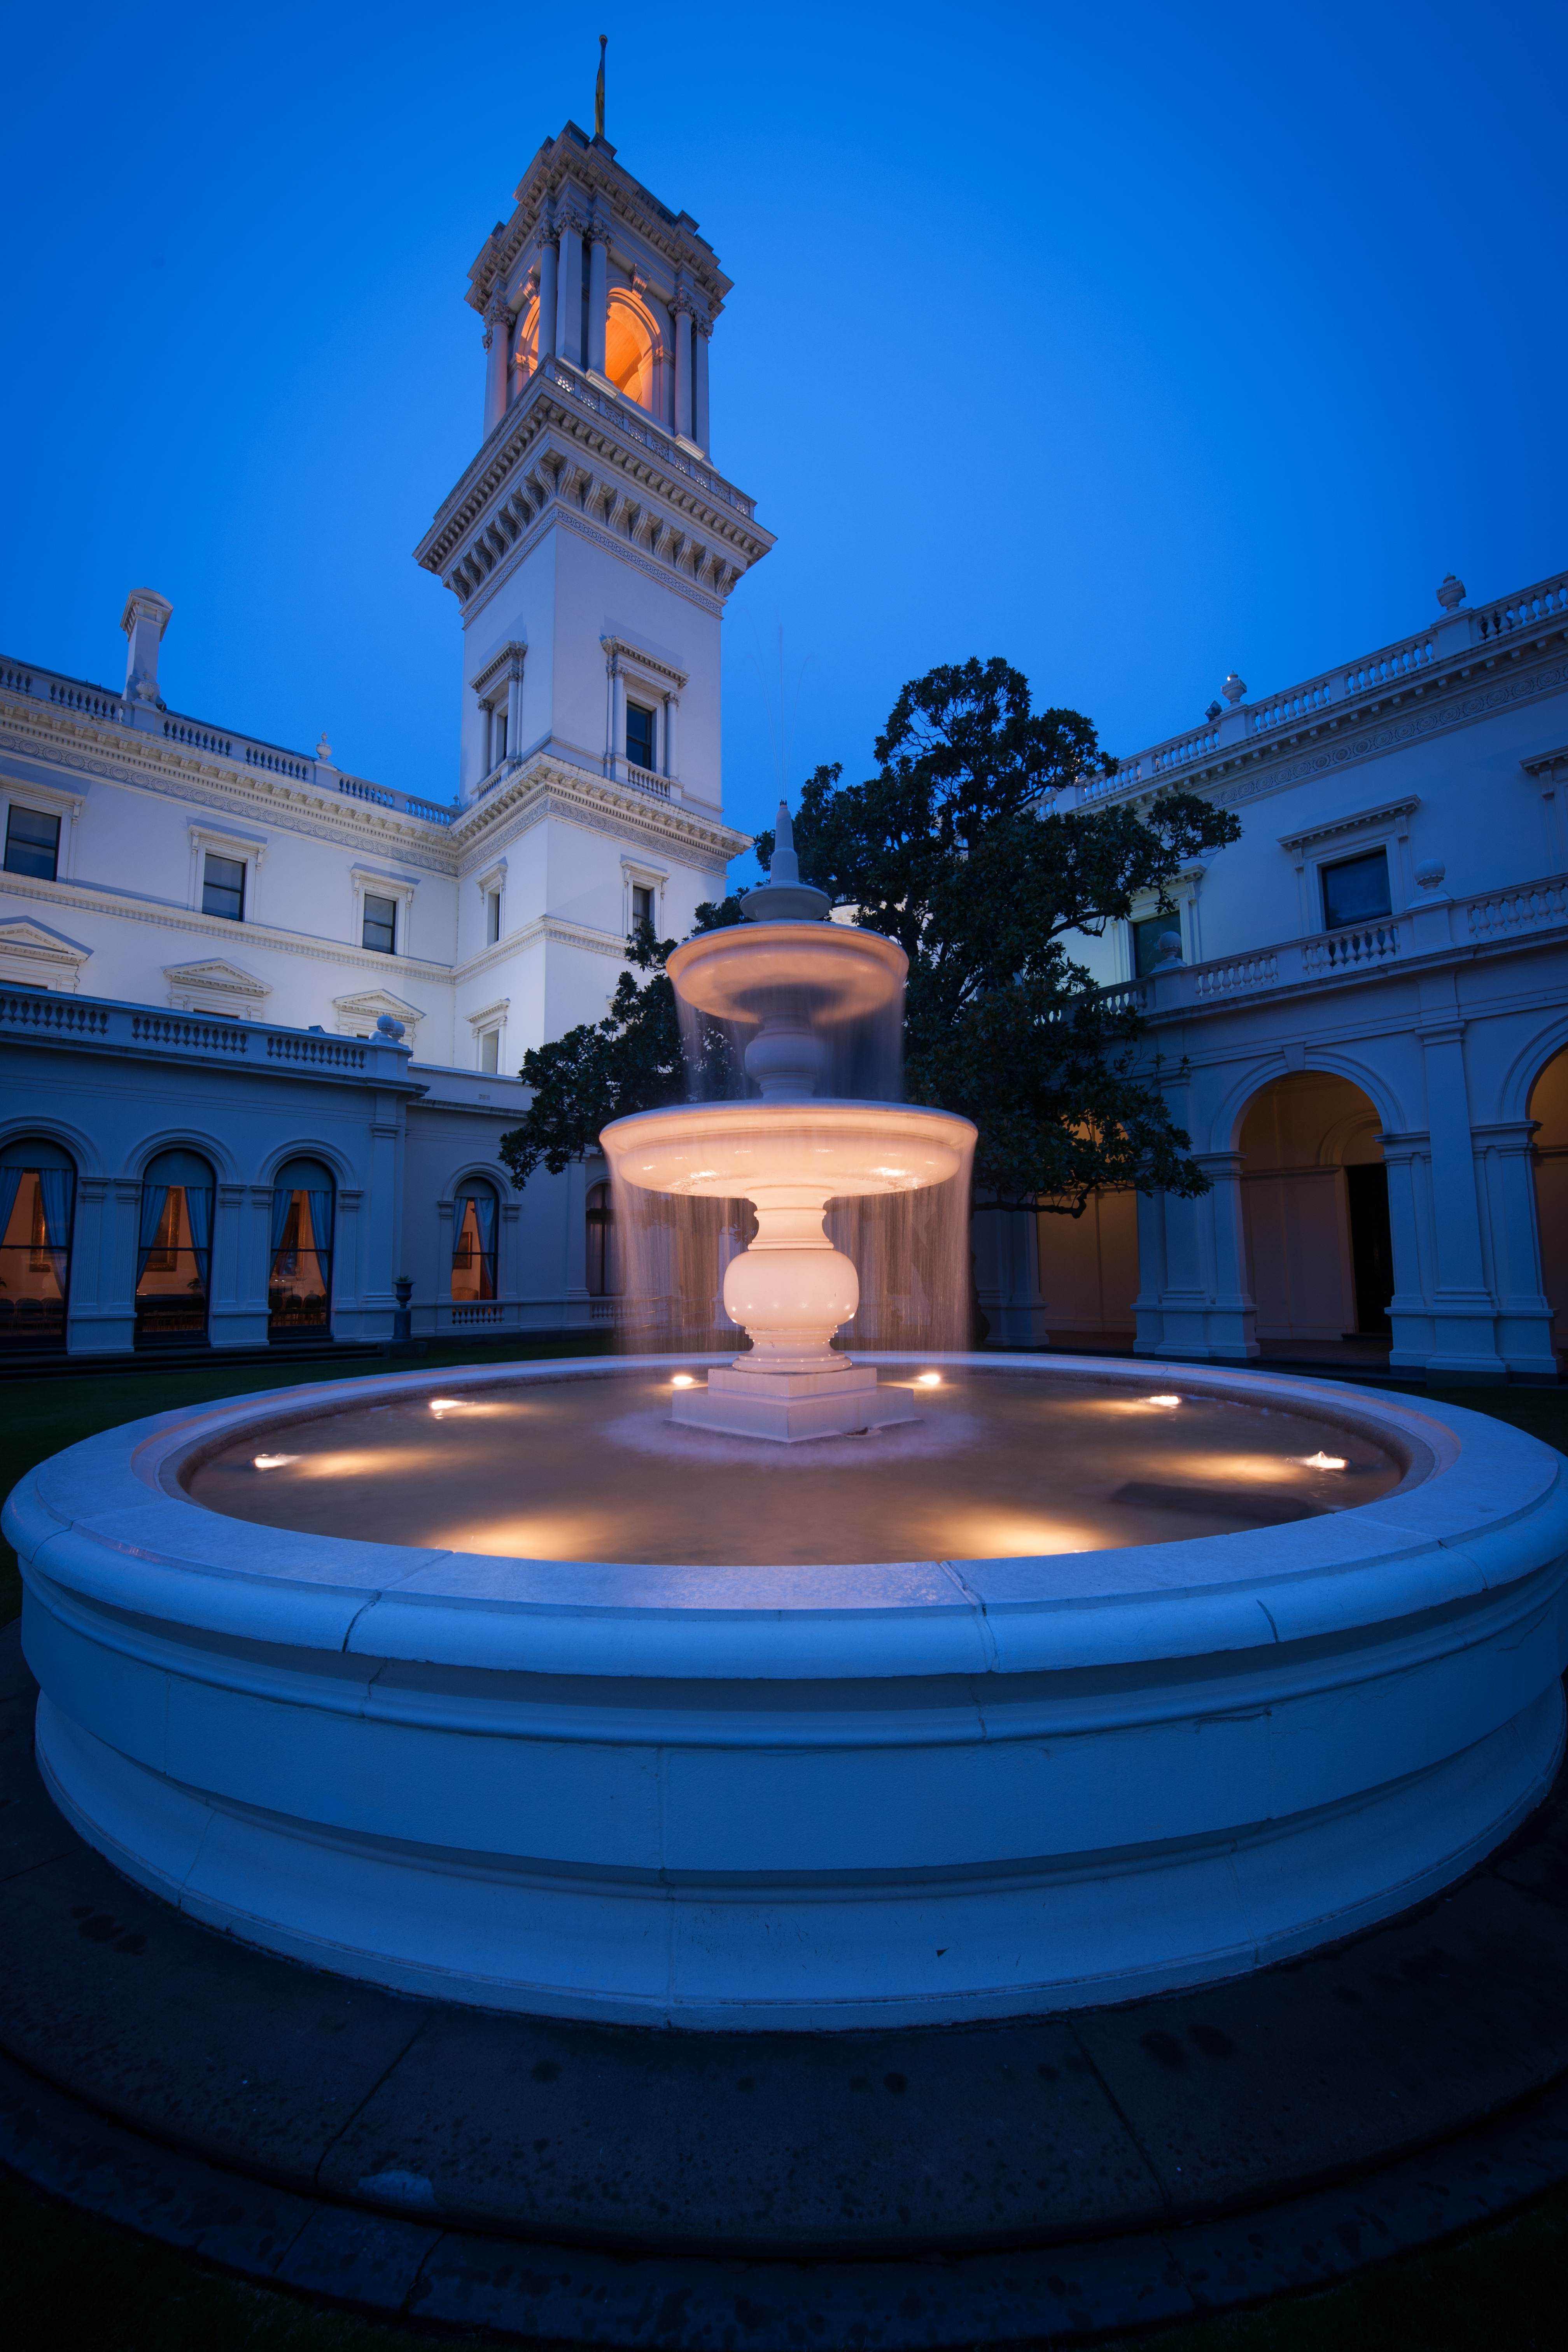 fountain at government house lit up at dusk.